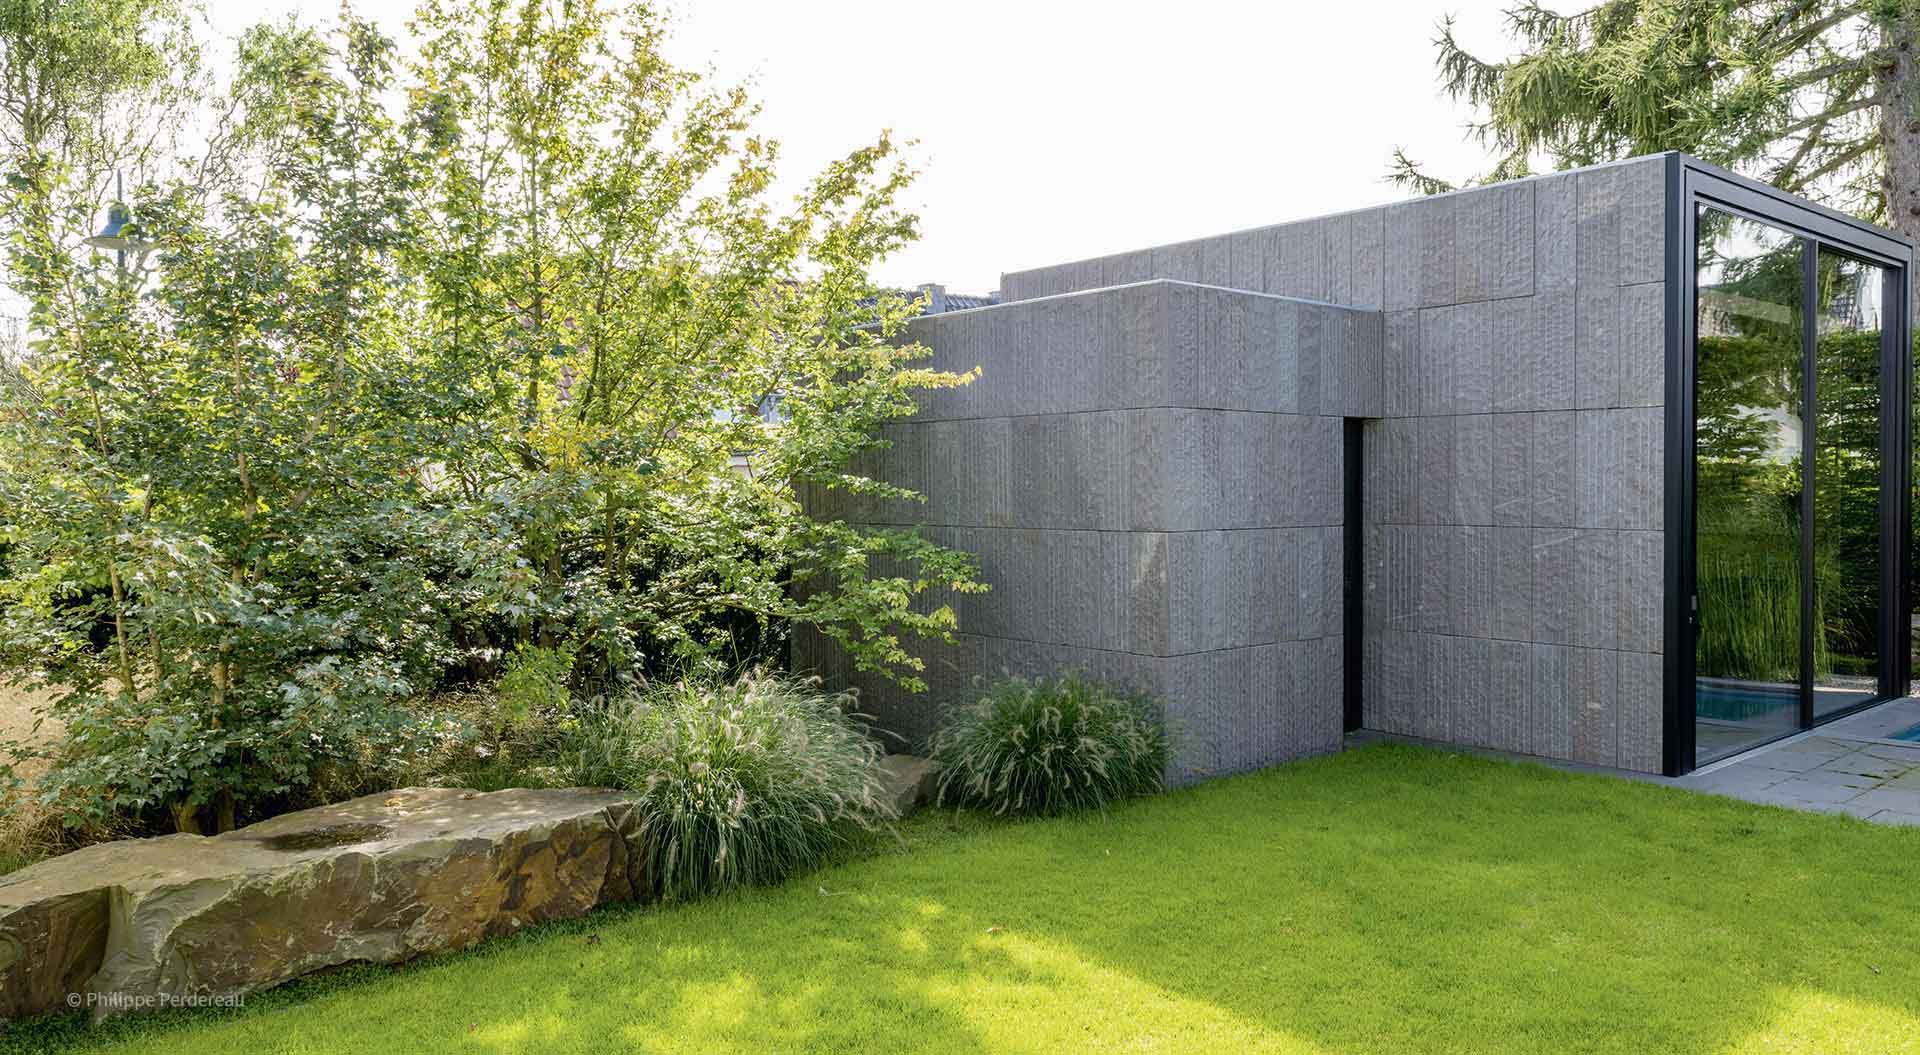 Natural stones and plants adjoin the grass and a lean-to